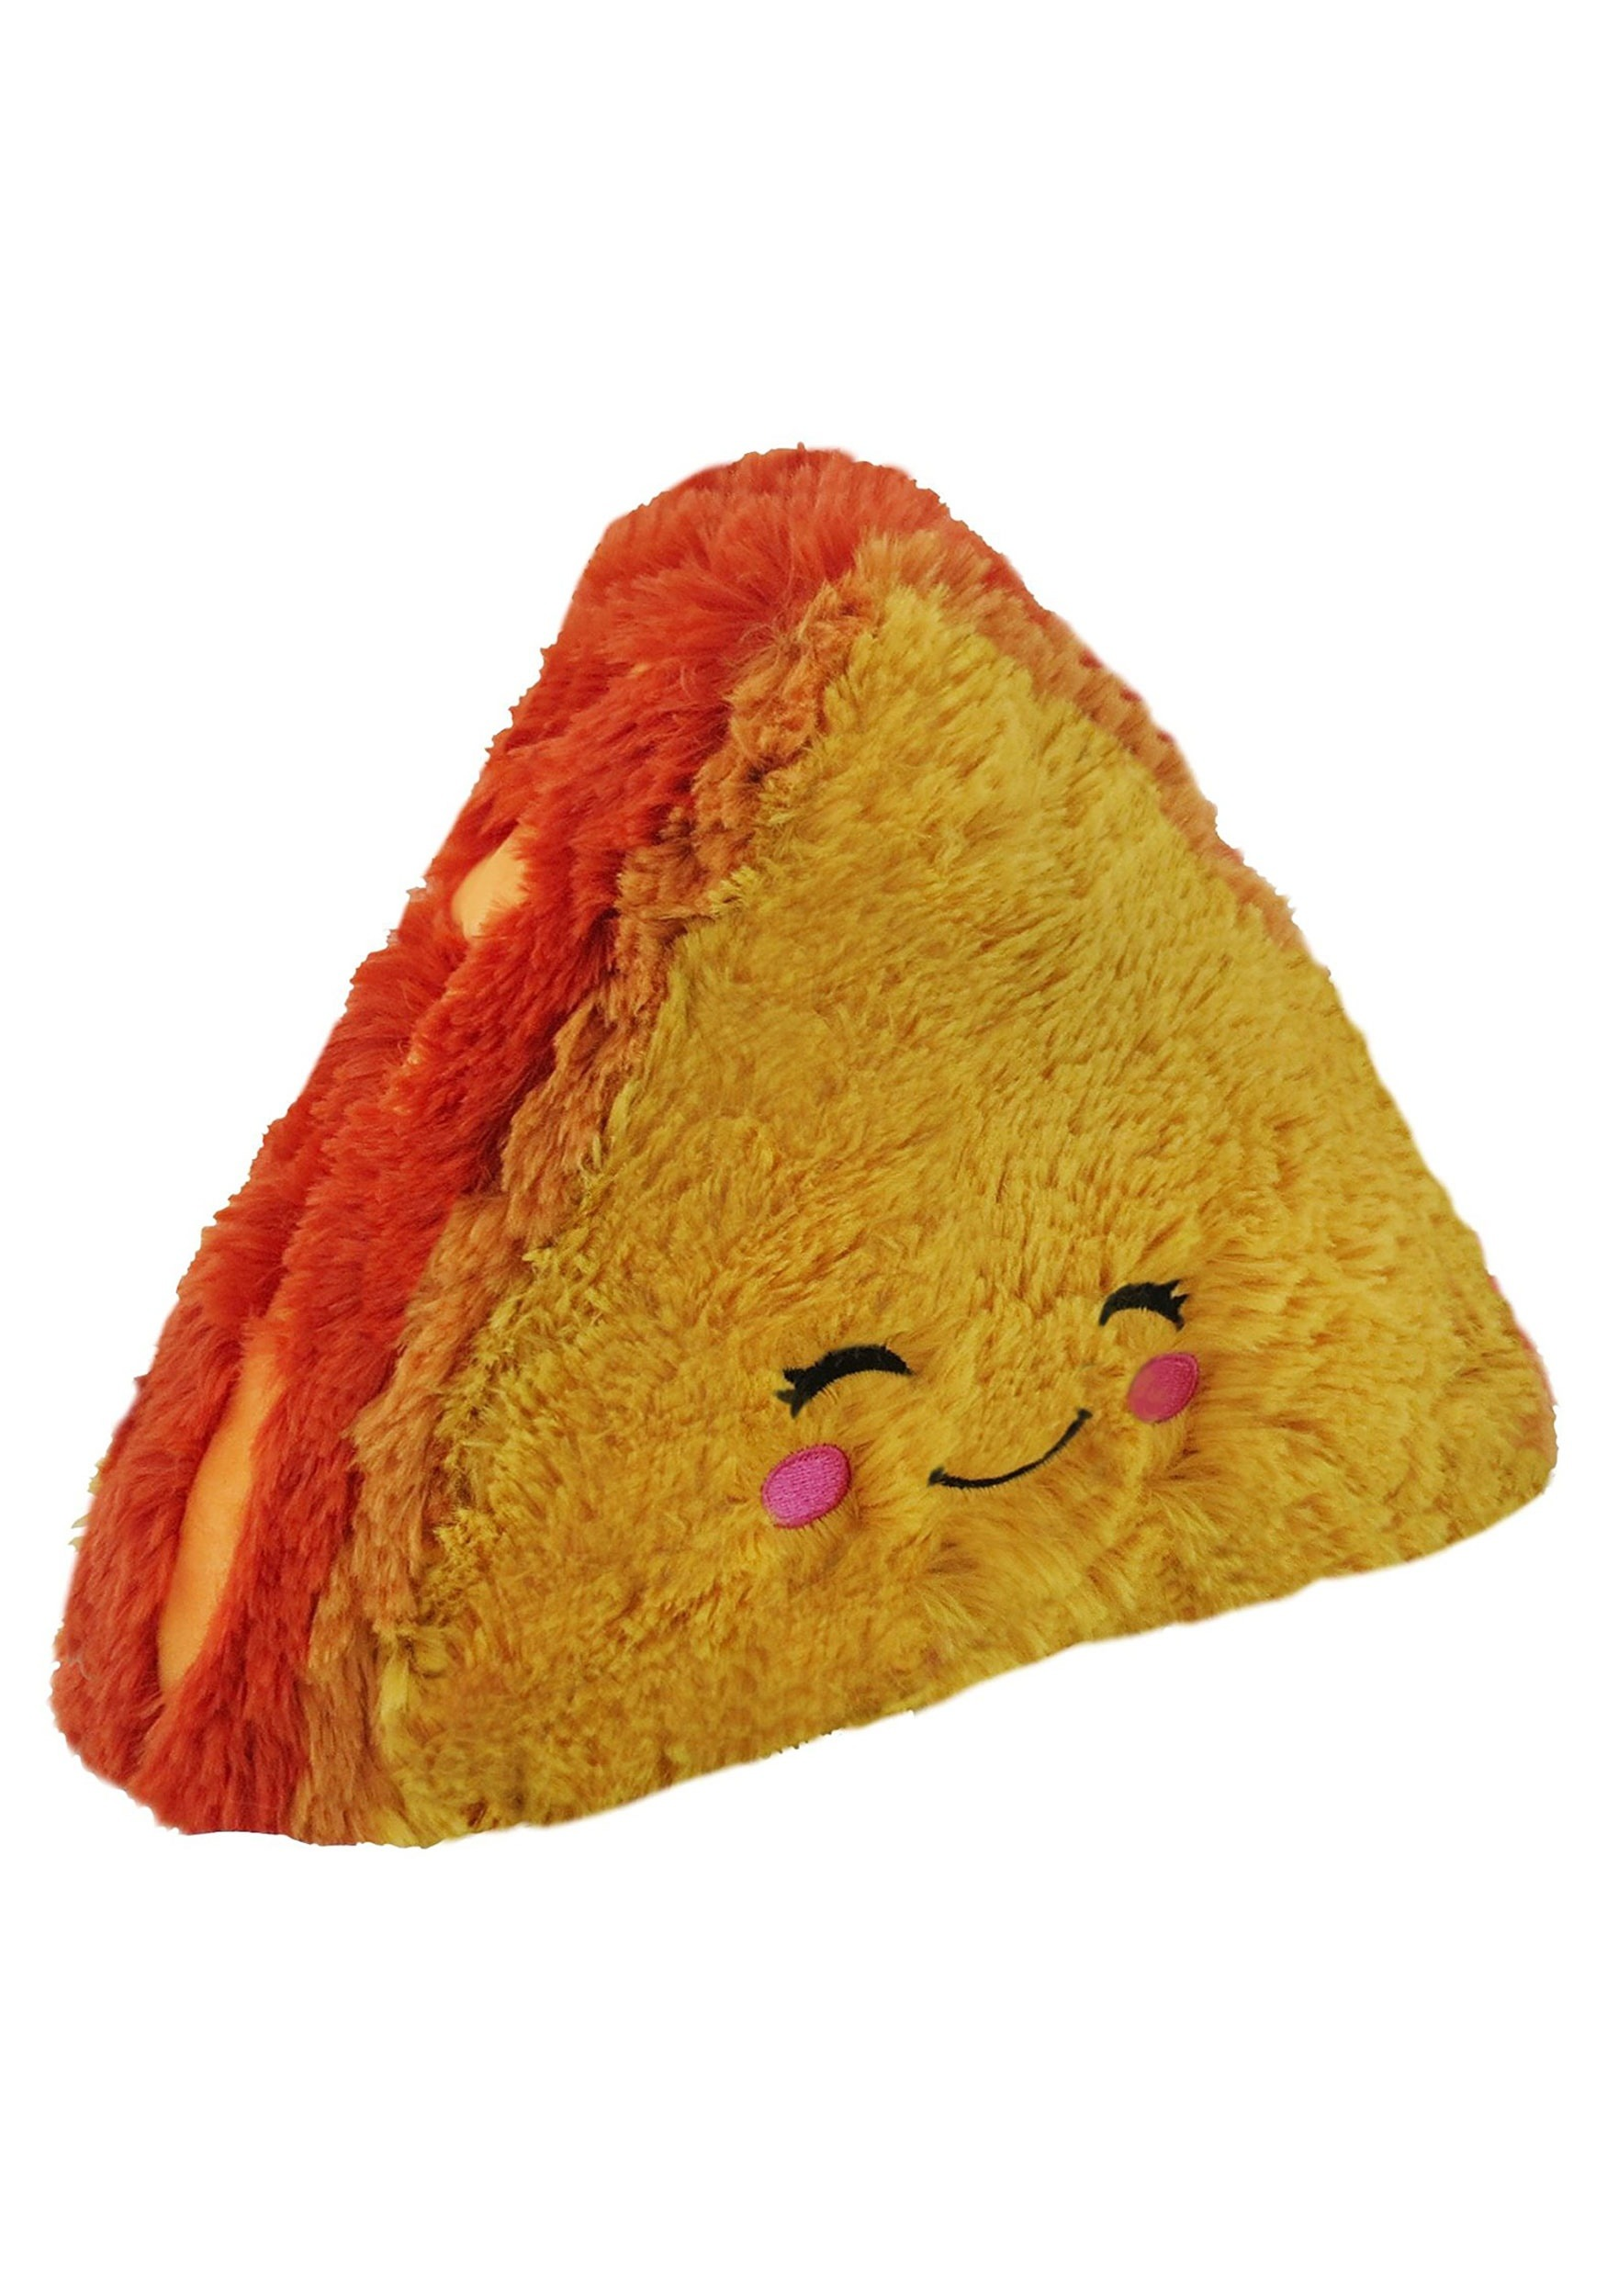 Squishable Grilled Cheese Plush